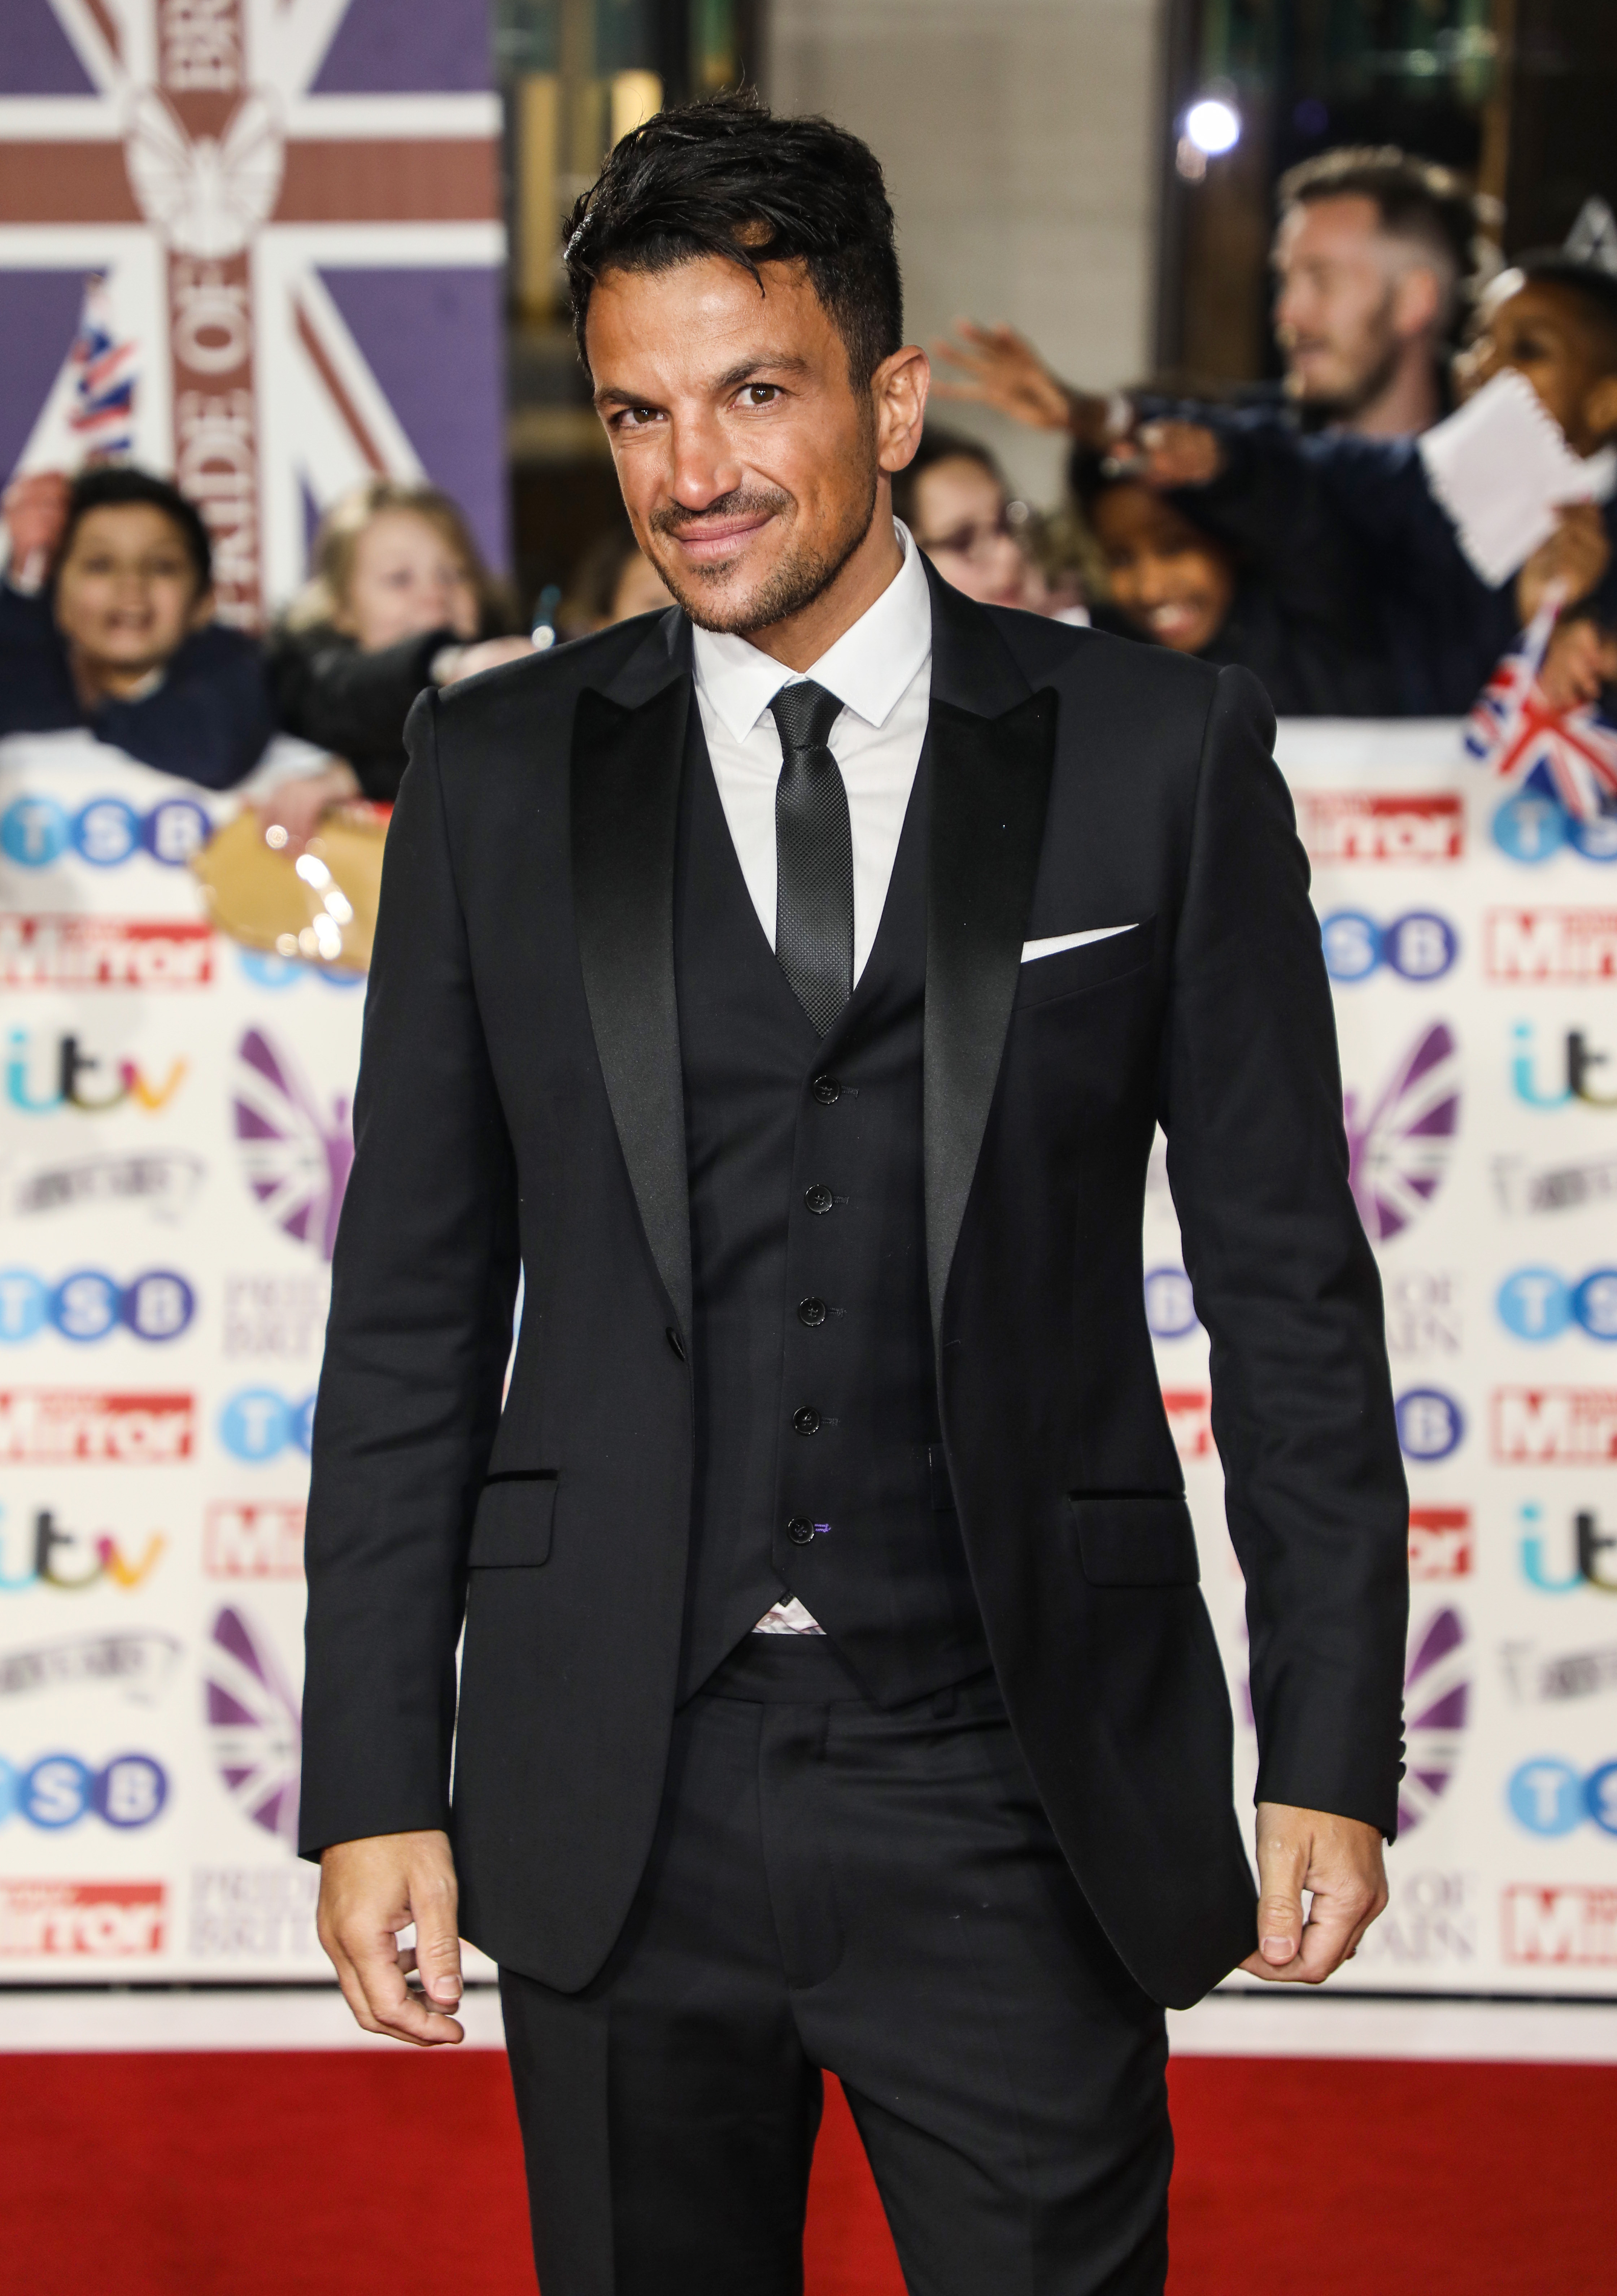 Celebrities arrive at the Pride of Britain Awards in London Pictured: Peter Andre Ref: SPL5124971 281019 NON-EXCLUSIVE Picture by: Brett D. Cove / SplashNews.com Splash News and Pictures Los Angeles: 310-821-2666 New York: 212-619-2666 London: +44 (0)20 7644 7656 Berlin: +49 175 3764 166 photodesk@splashnews.com World Rights